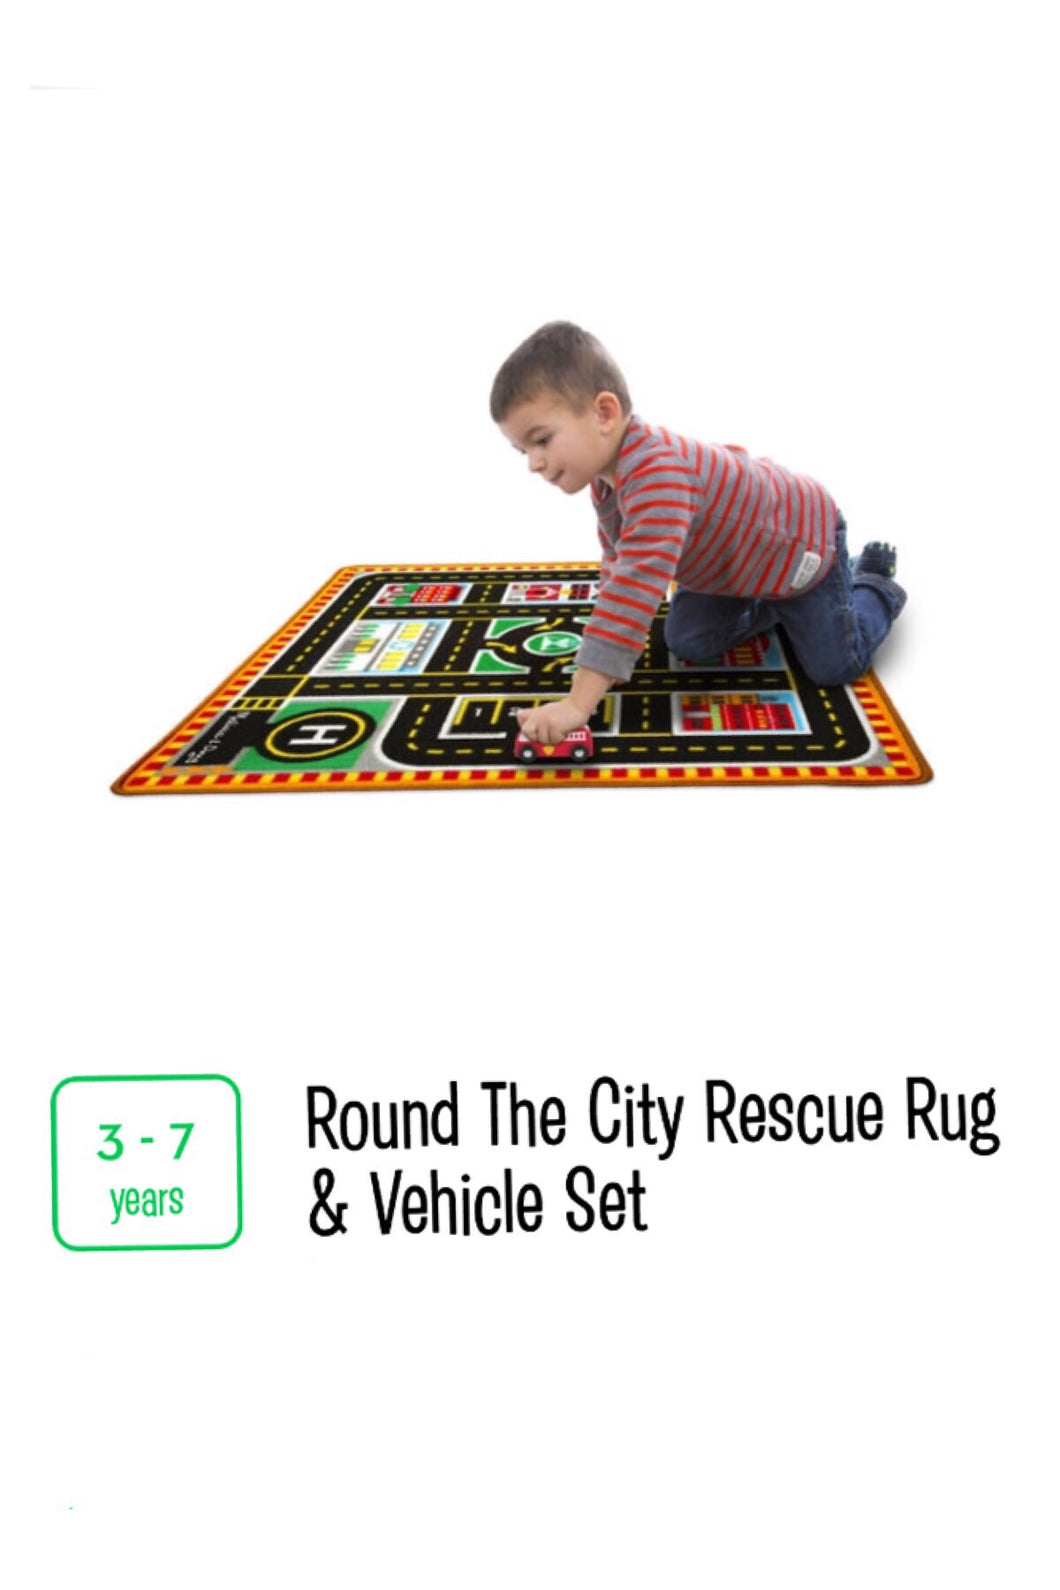 Round the City Rescue Rug and Vehicle Set